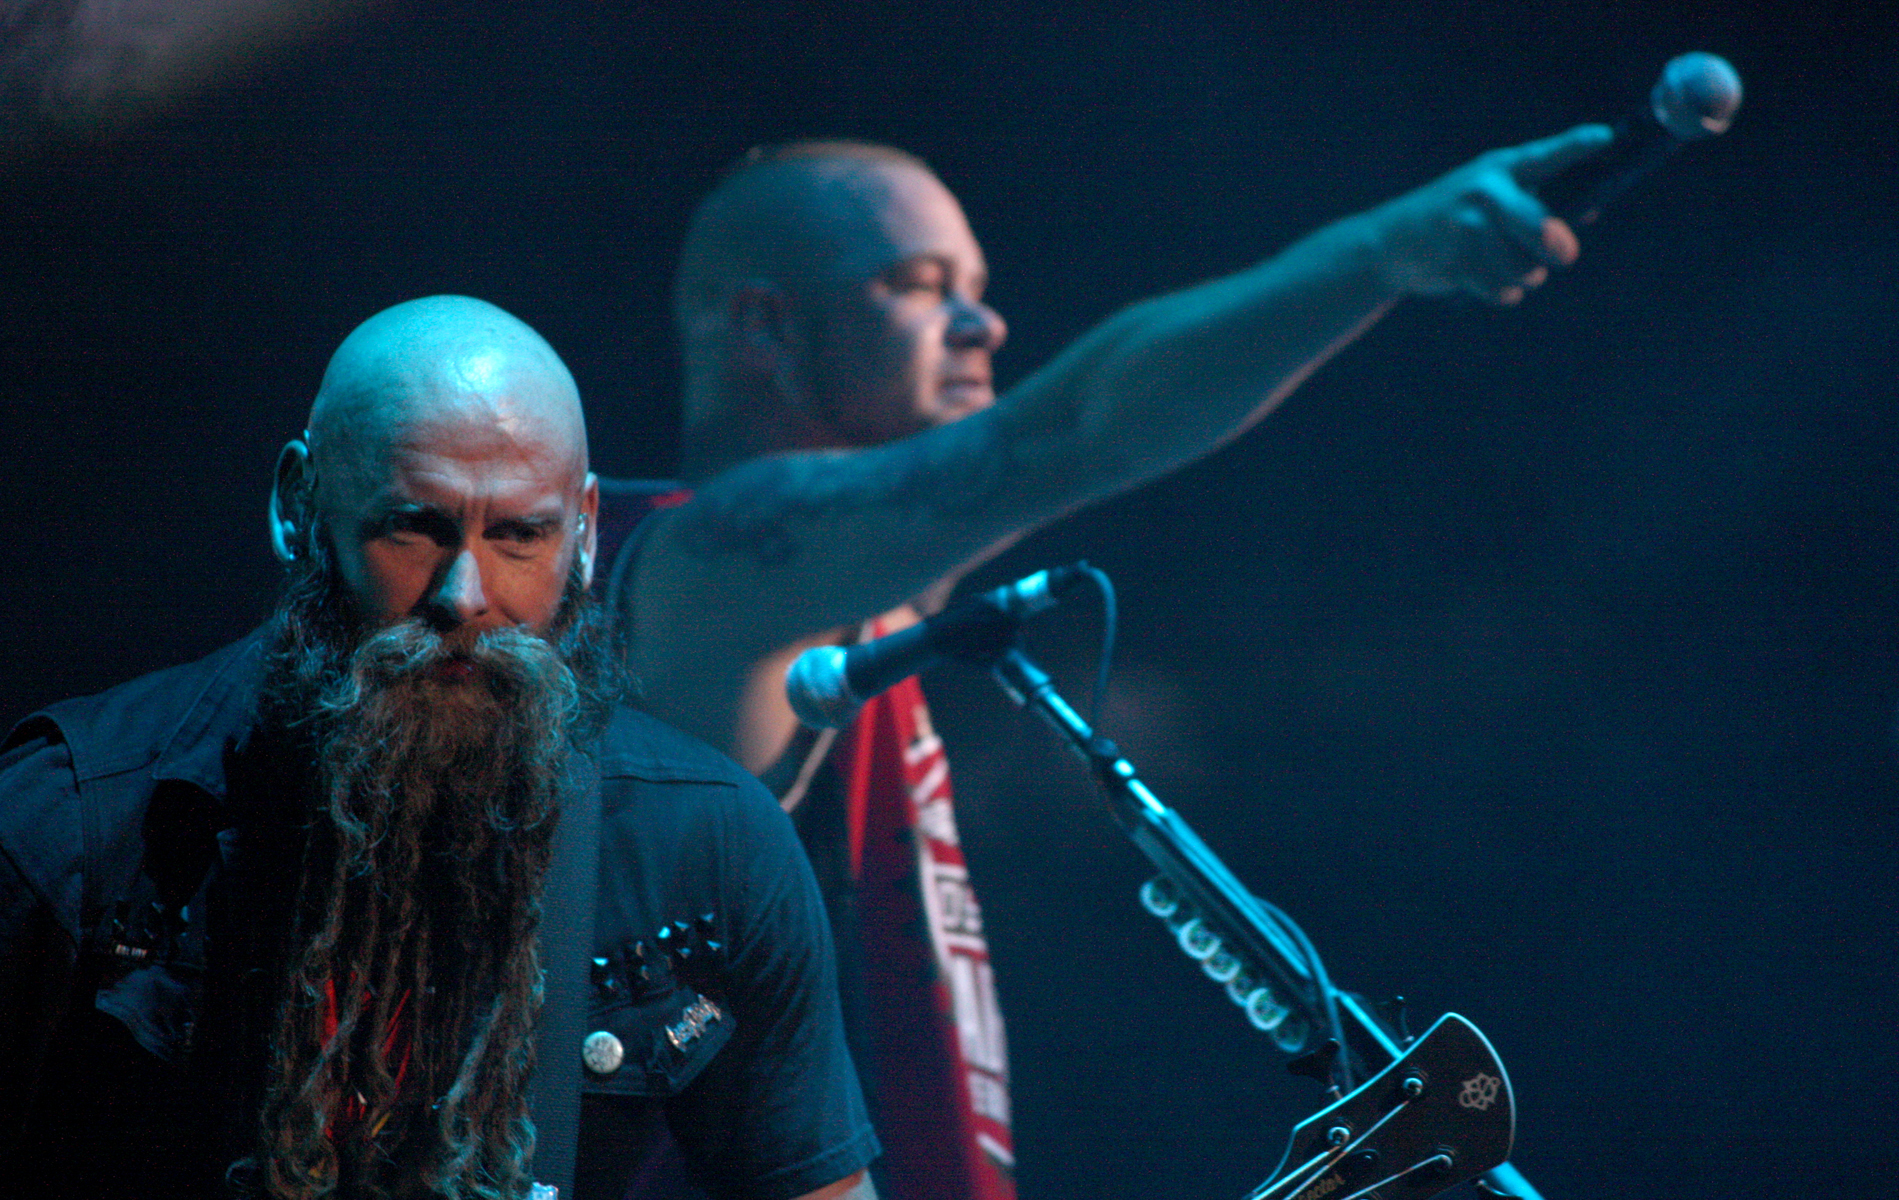 Chris Kael (left) and Ivan Moody of Five Finger Death Punch